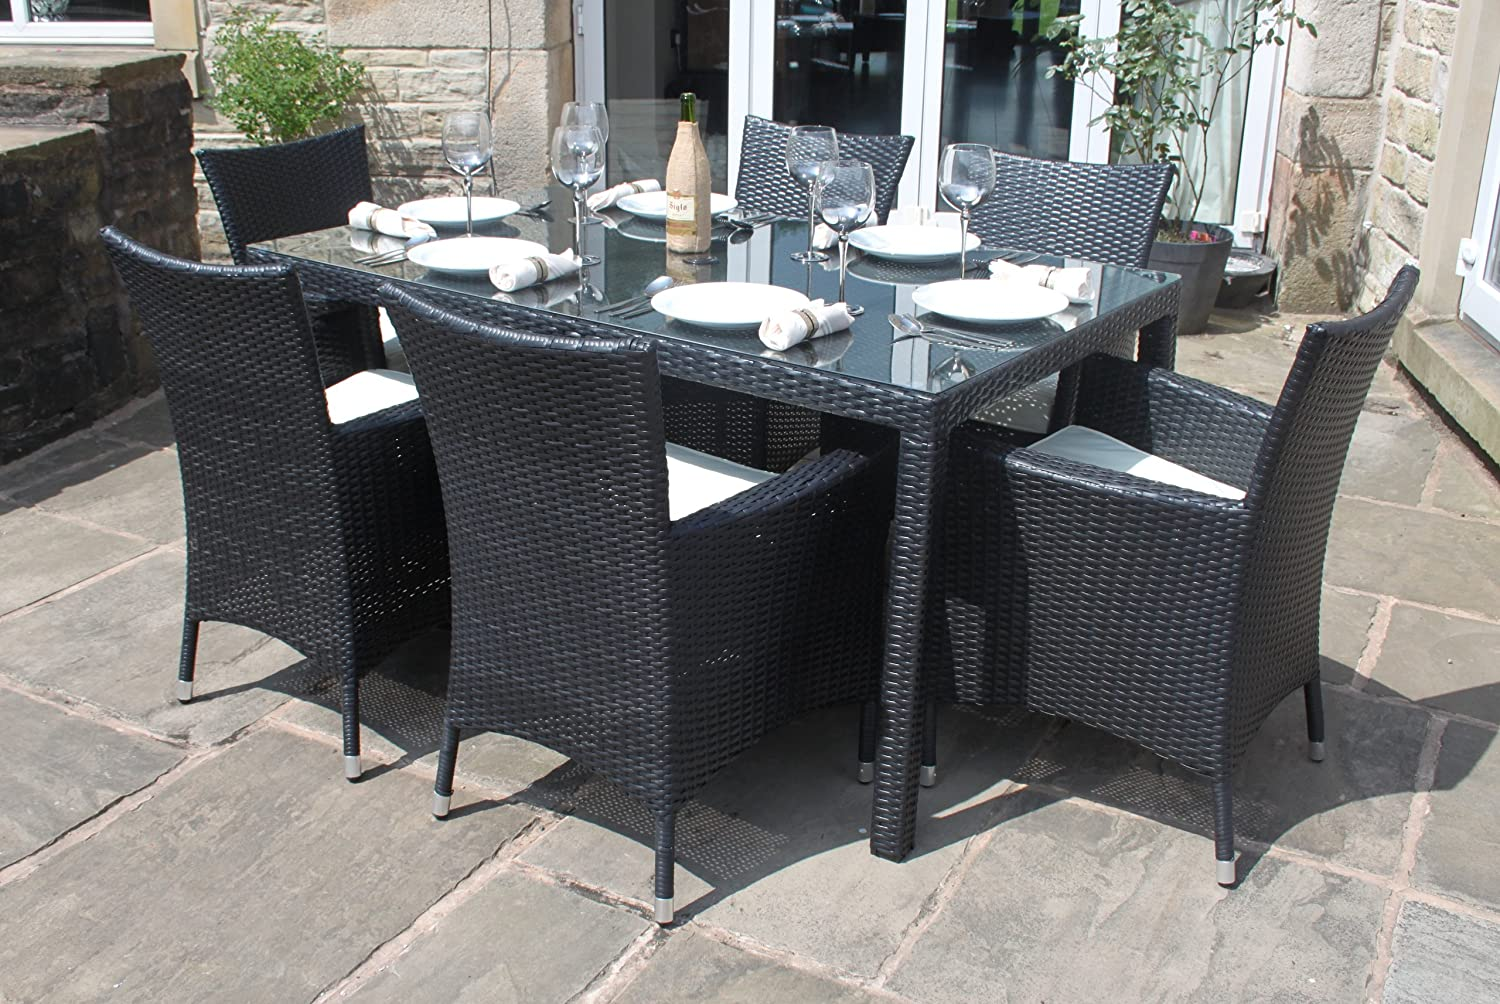 weatherproof rattan 6 seater garden furniture dining set in black amazoncouk garden outdoors - Garden Furniture 6 Seats